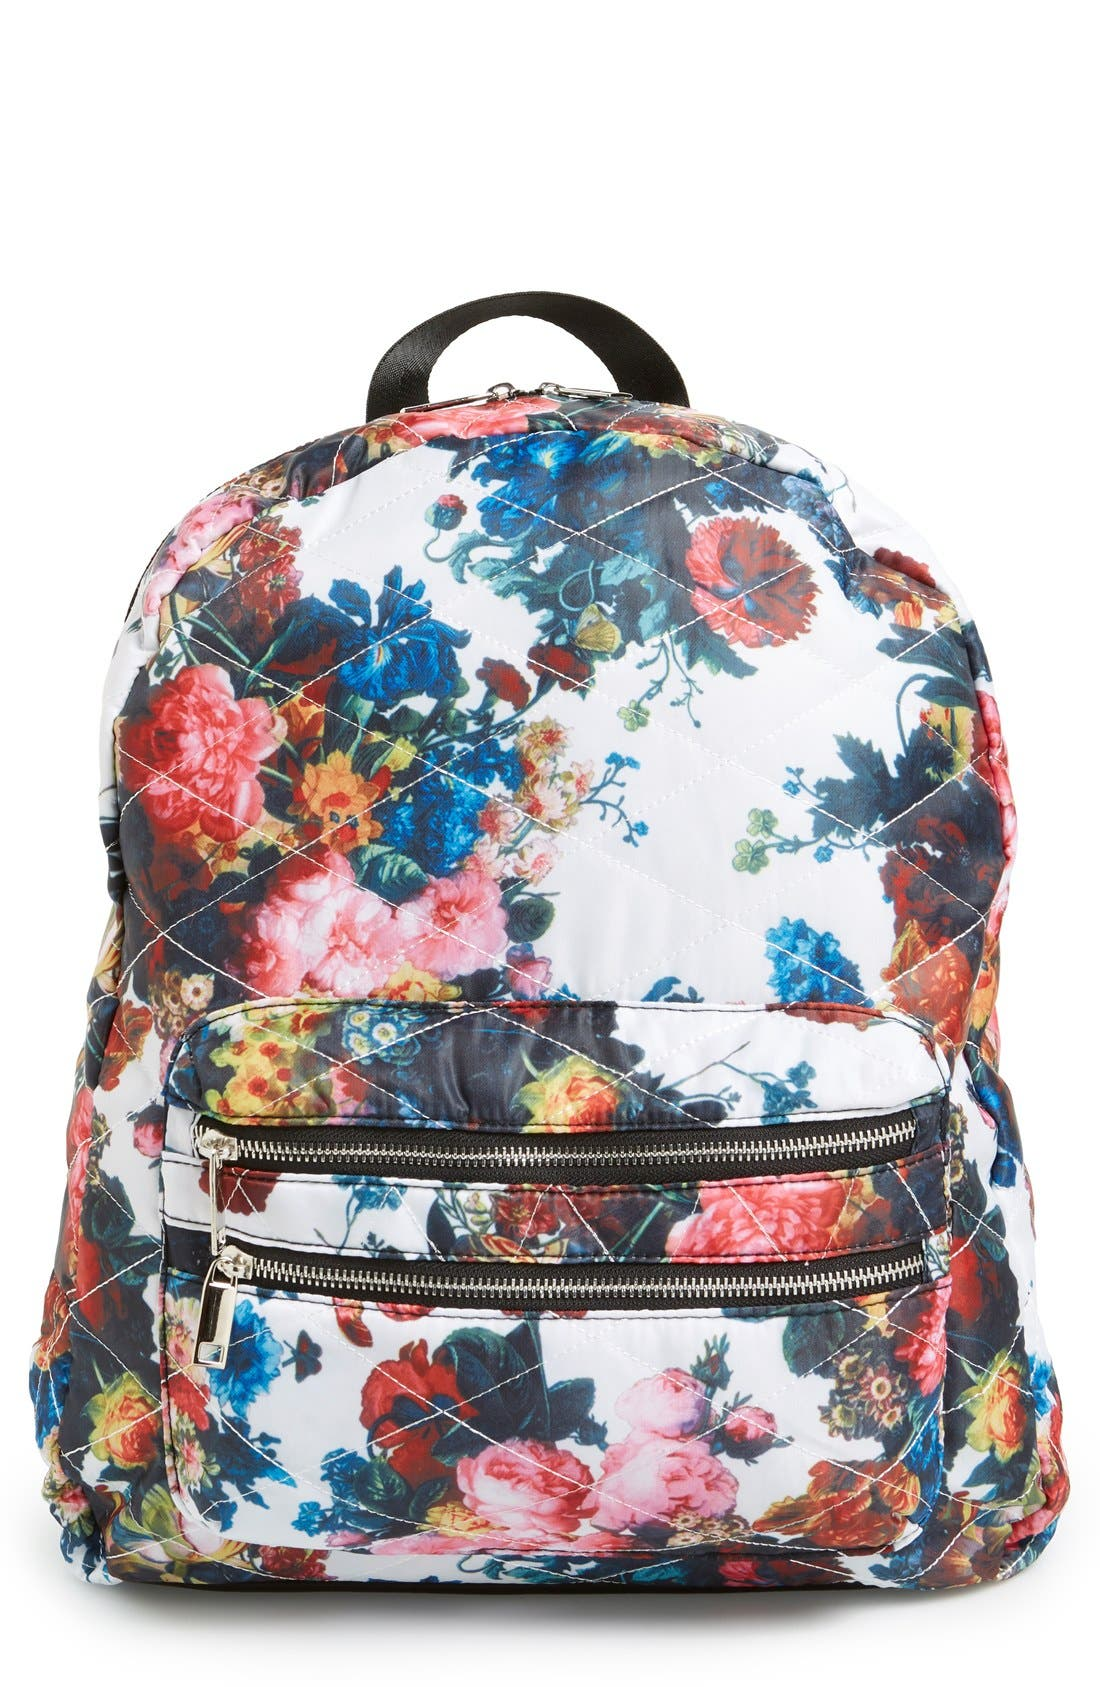 Main Image - Dolce Girl 'Dome' Floral Print Quilted Backpack